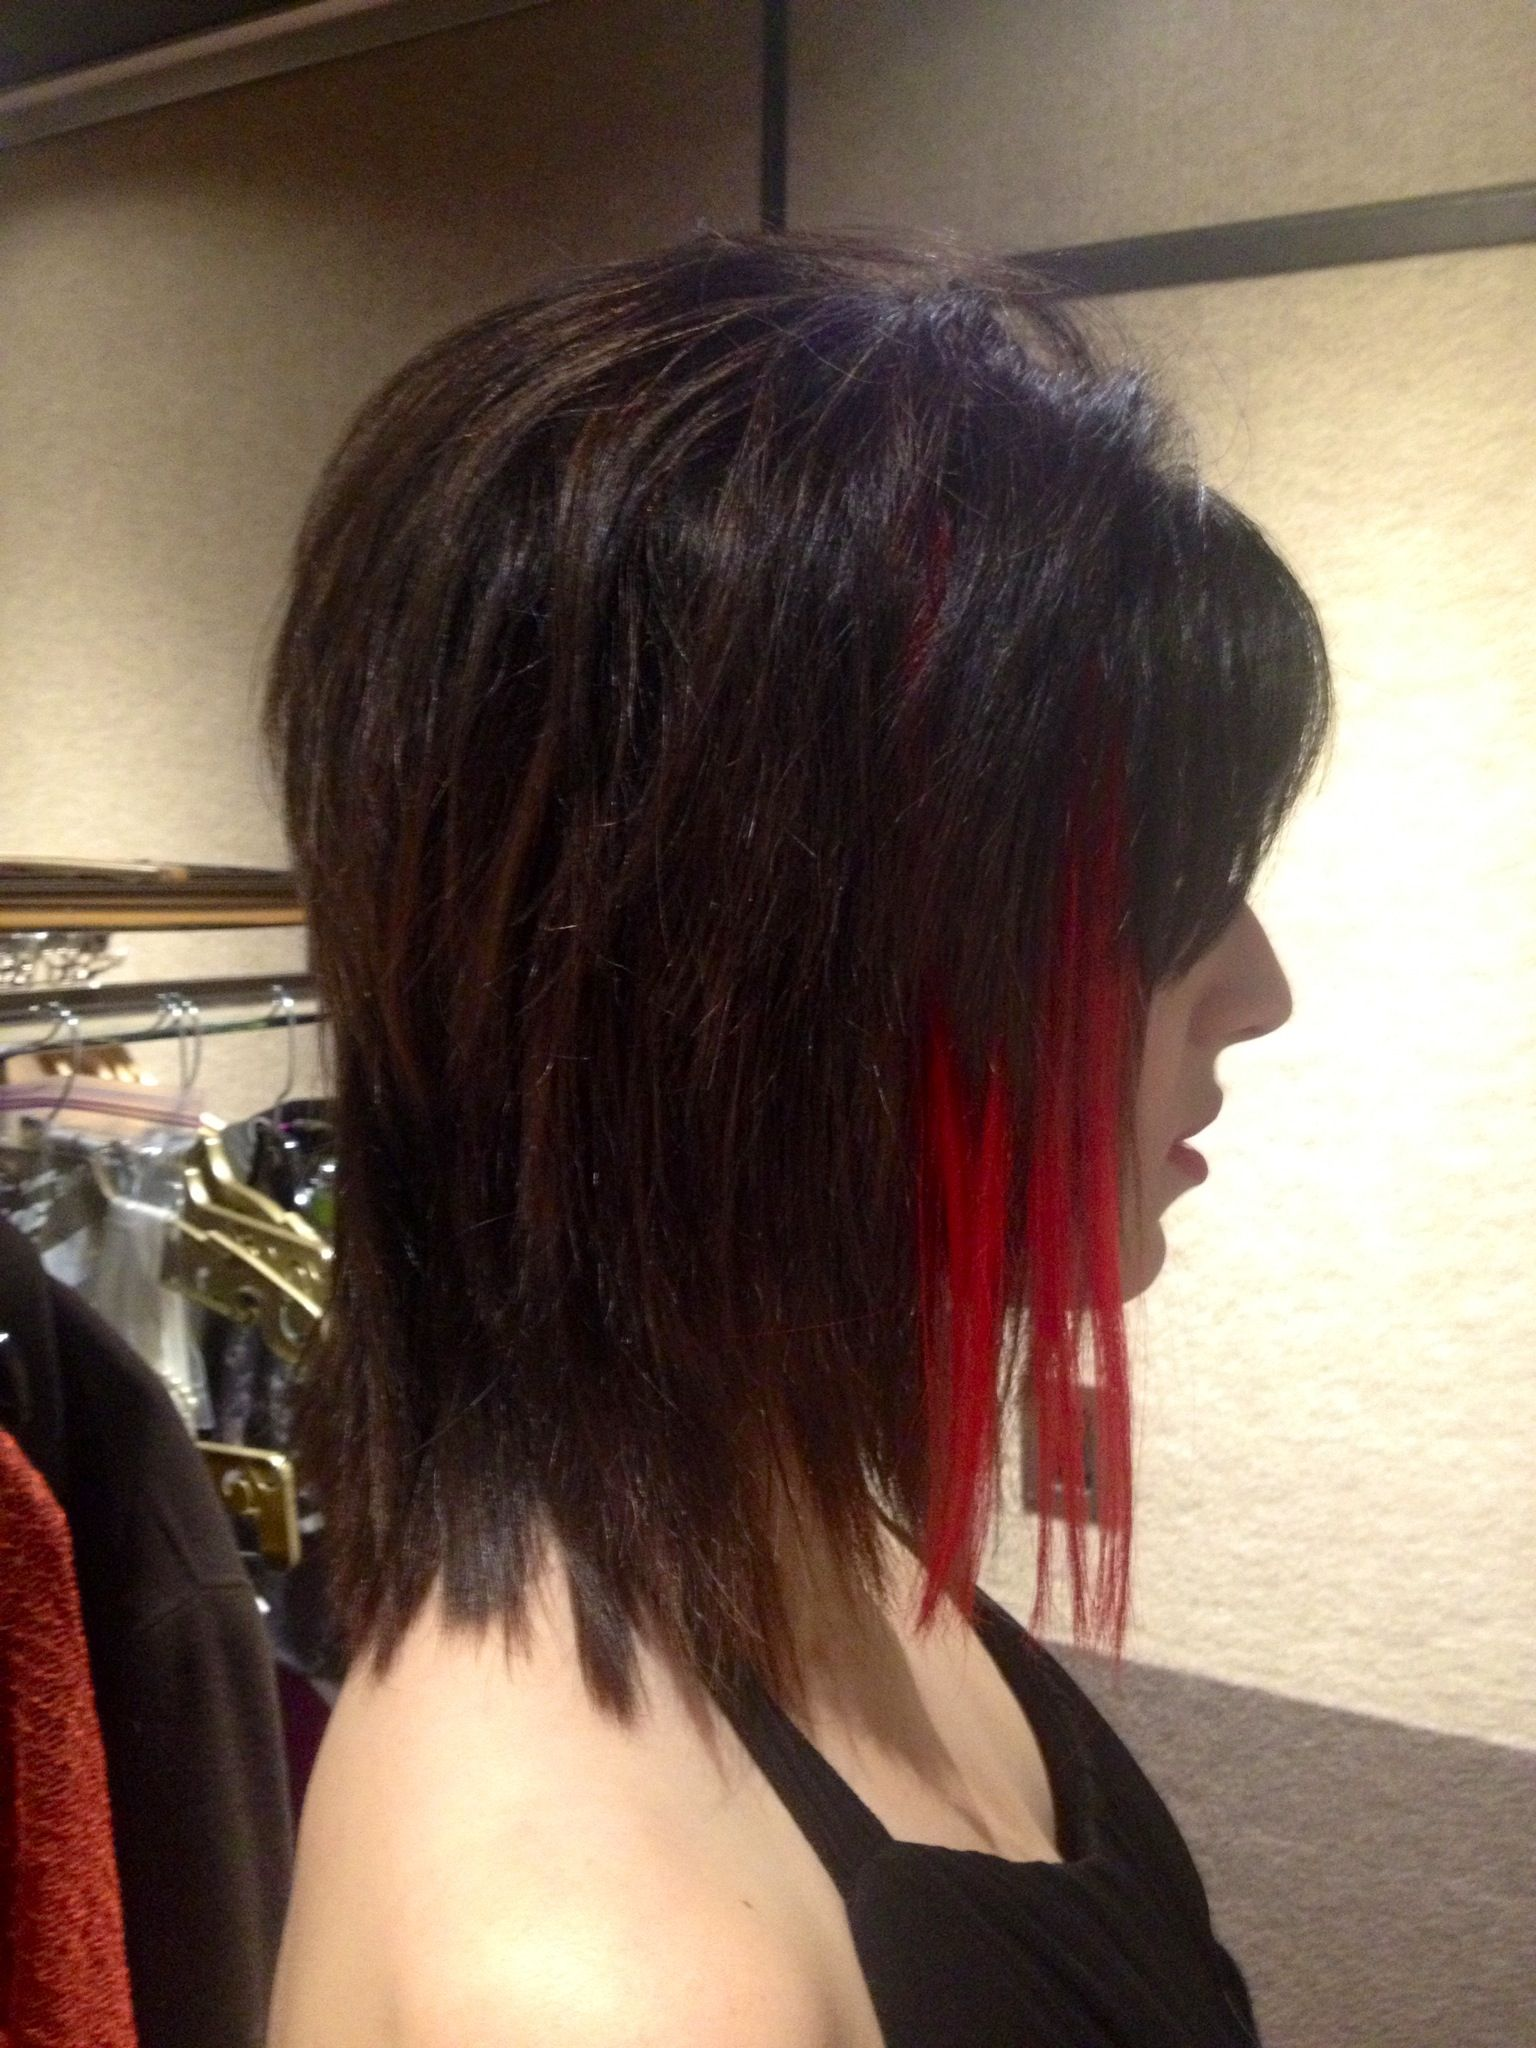 Disconnected haircut with punky color red hair extension shaz